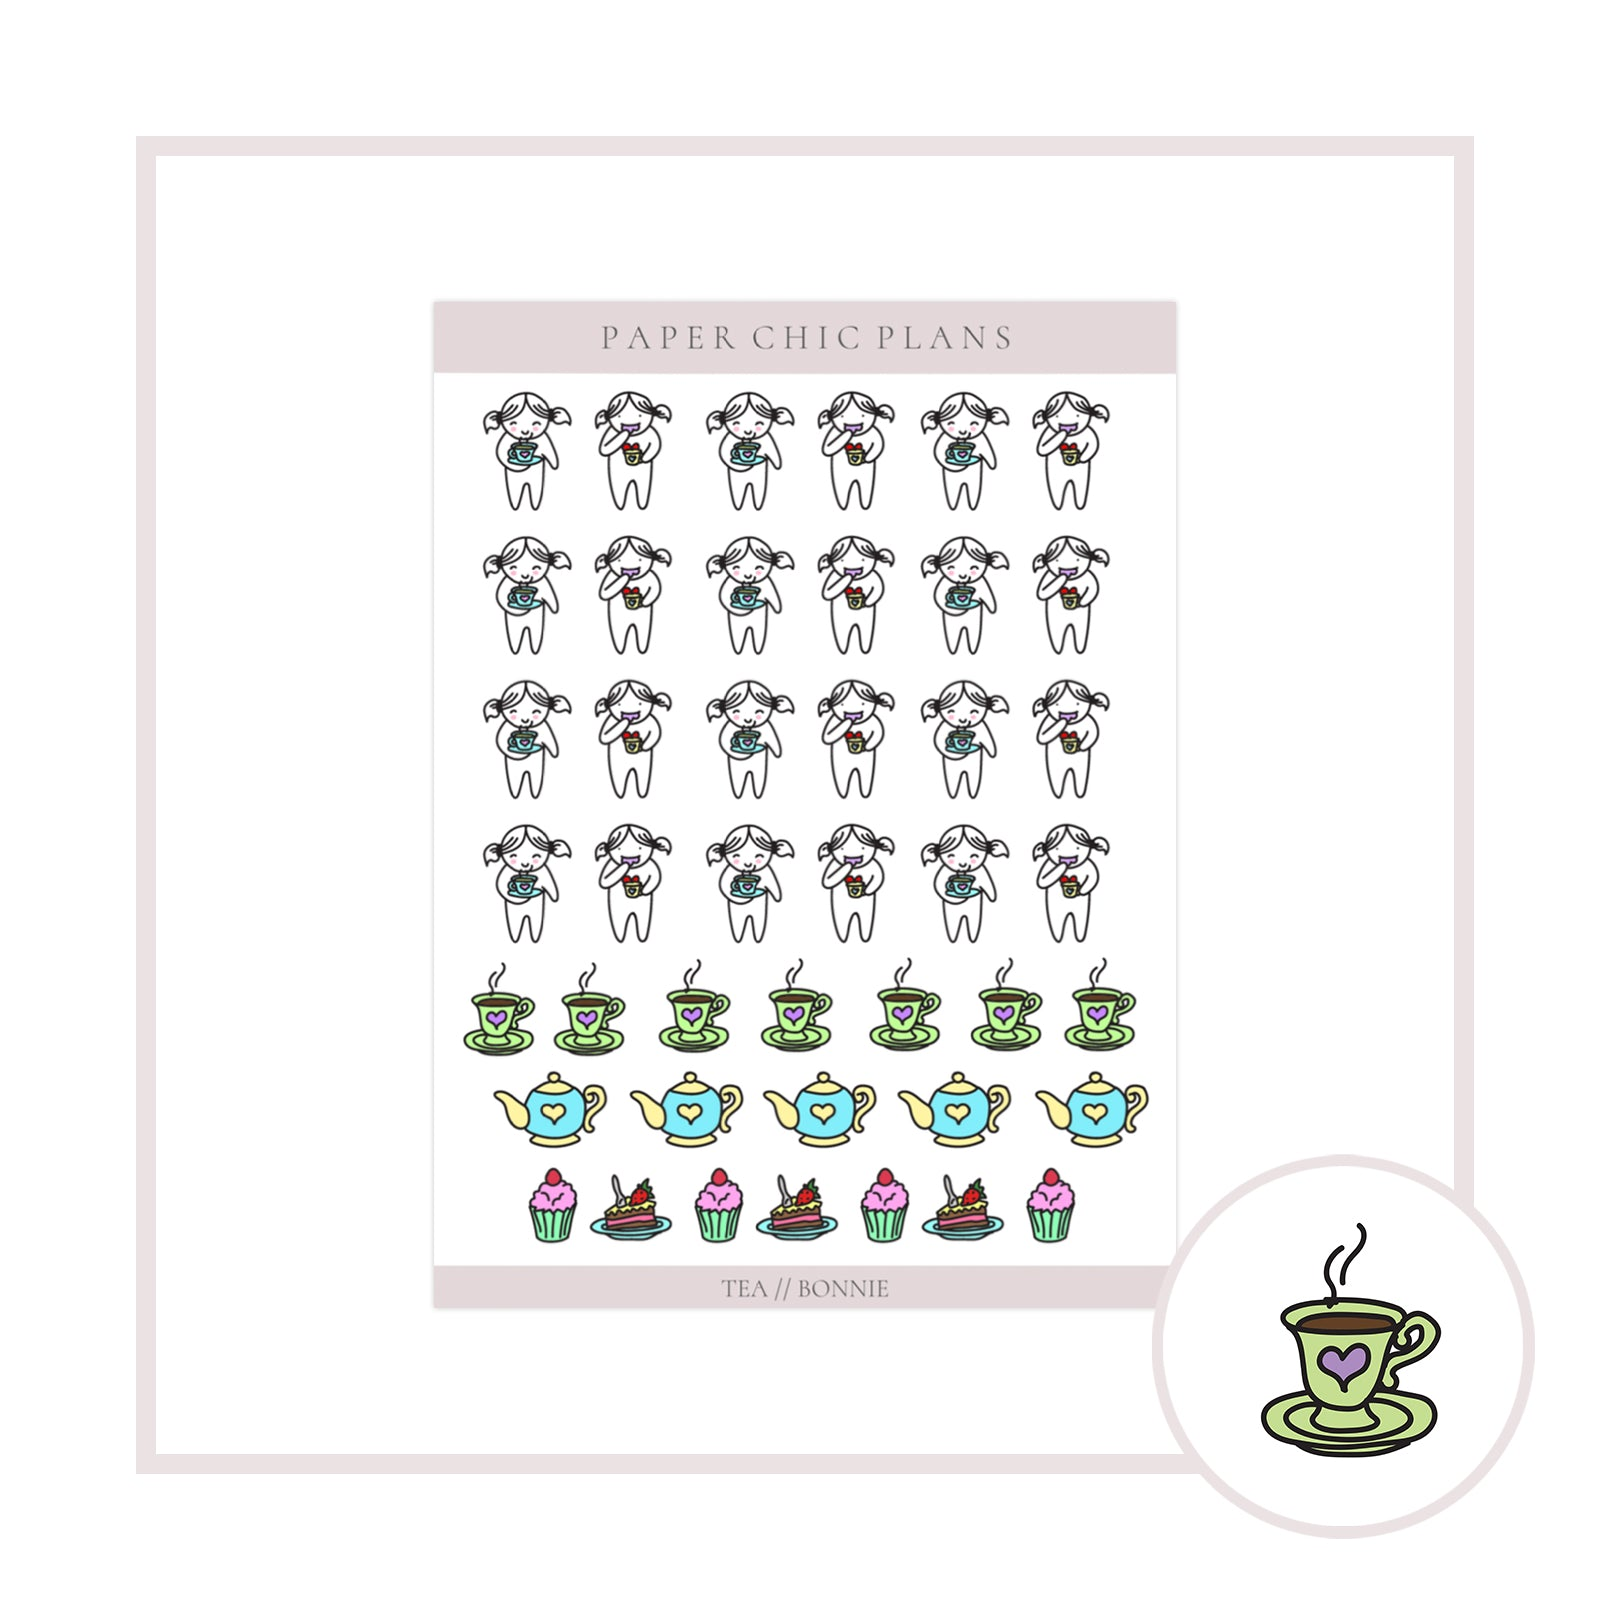 Tea // Bonnie Collection - Paper Chic Plans